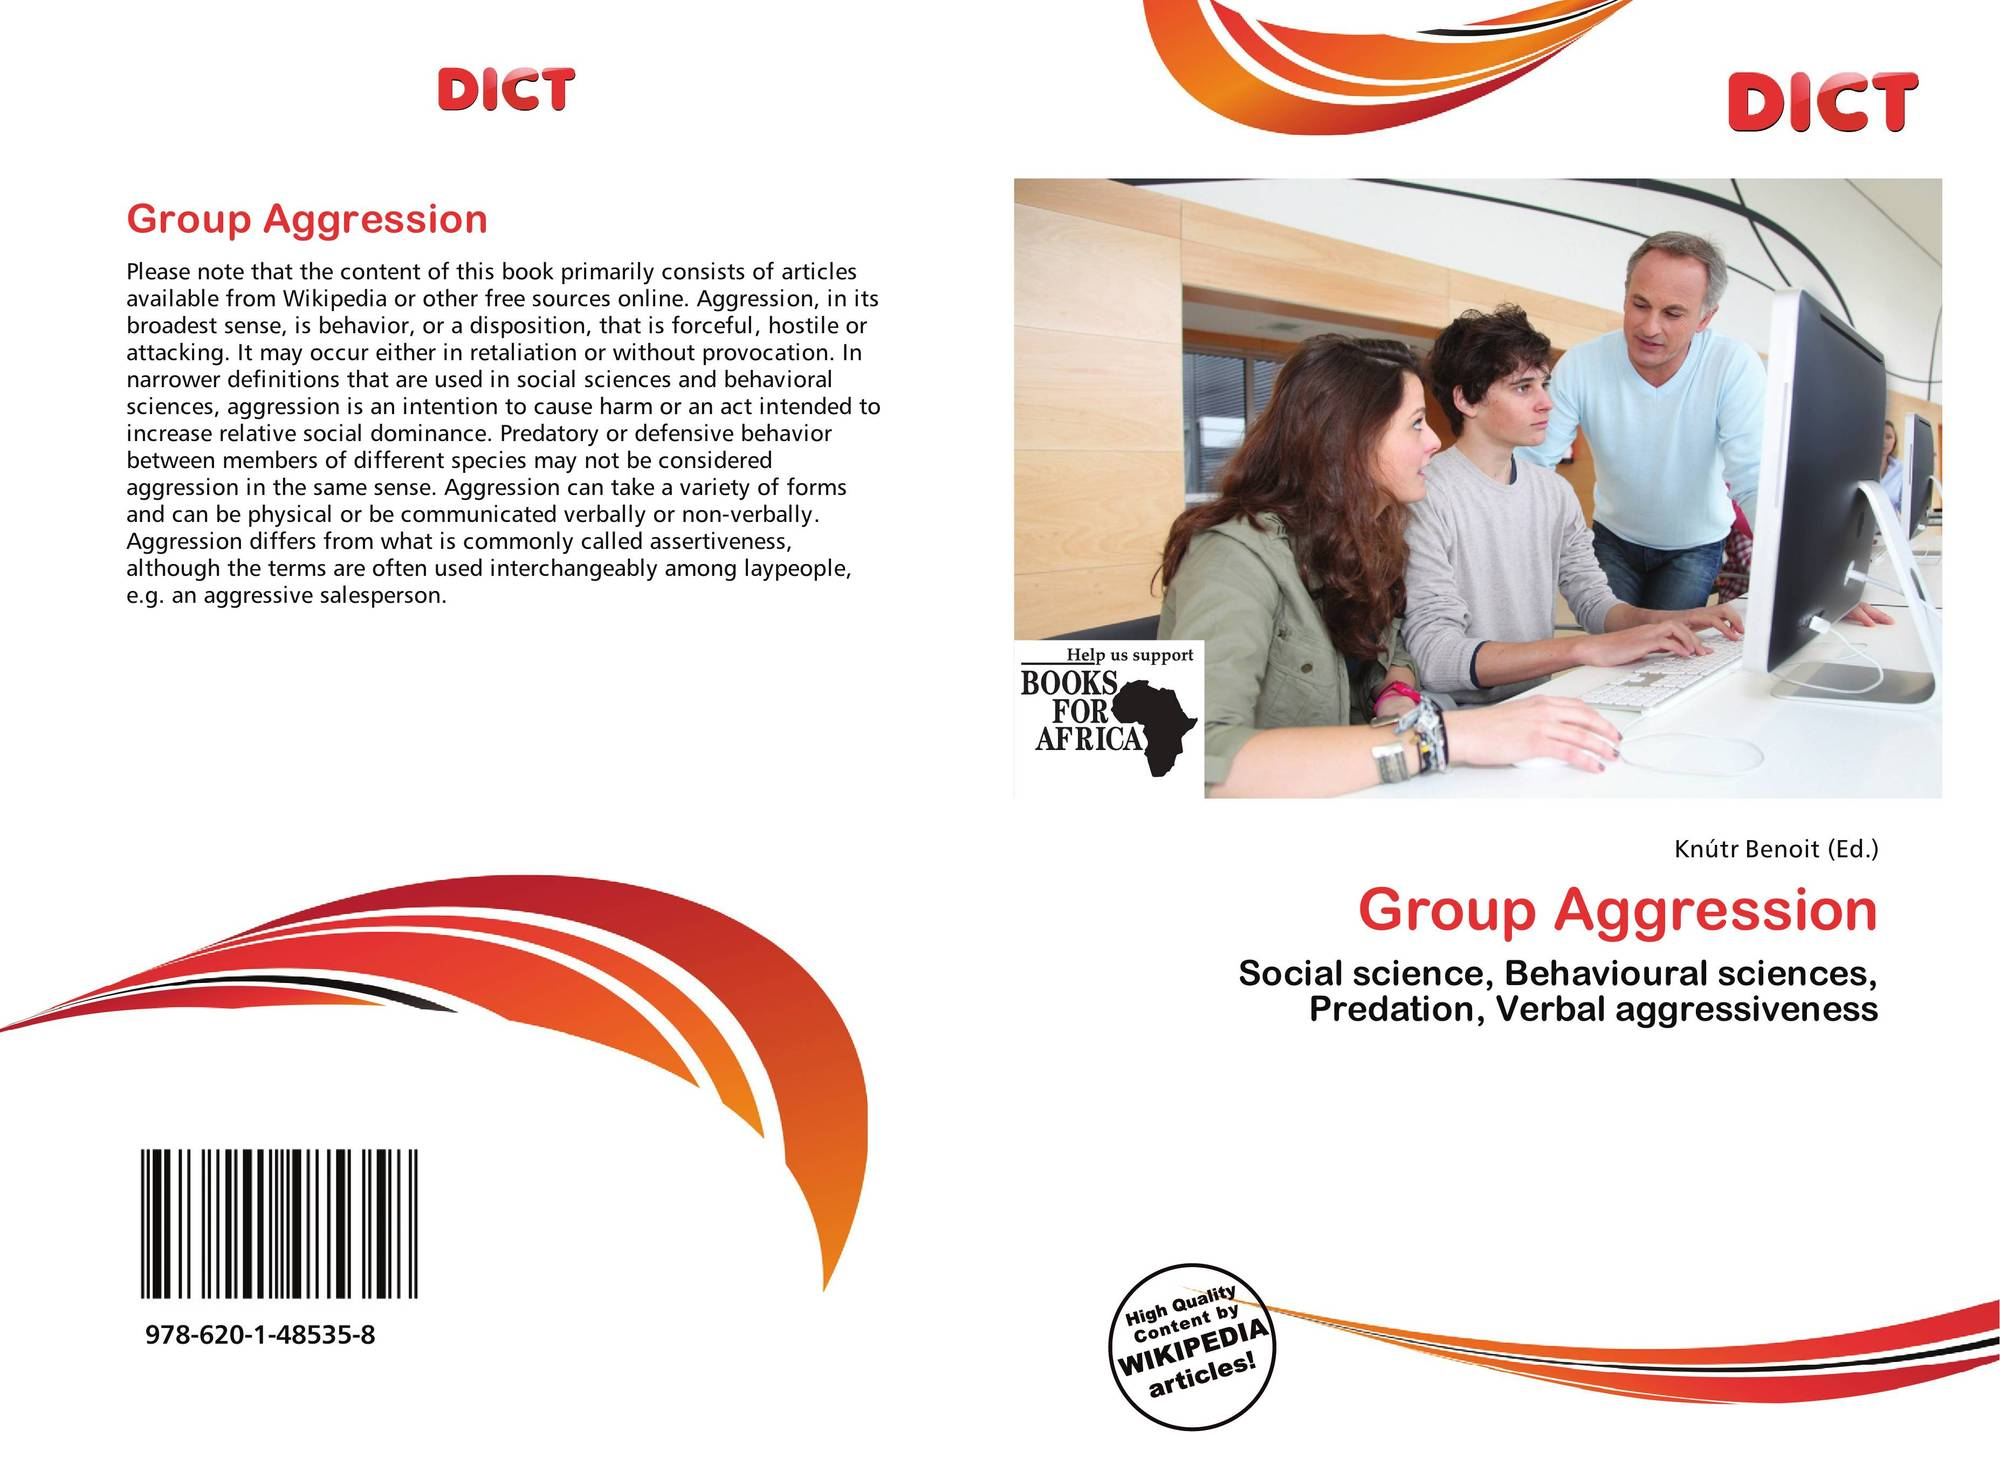 the triggers and treatment of verbal aggression Our language has many idiomatic expressions that describe a person with anger management issues, perhaps because impulsive anger is something we frequently witness or experience.